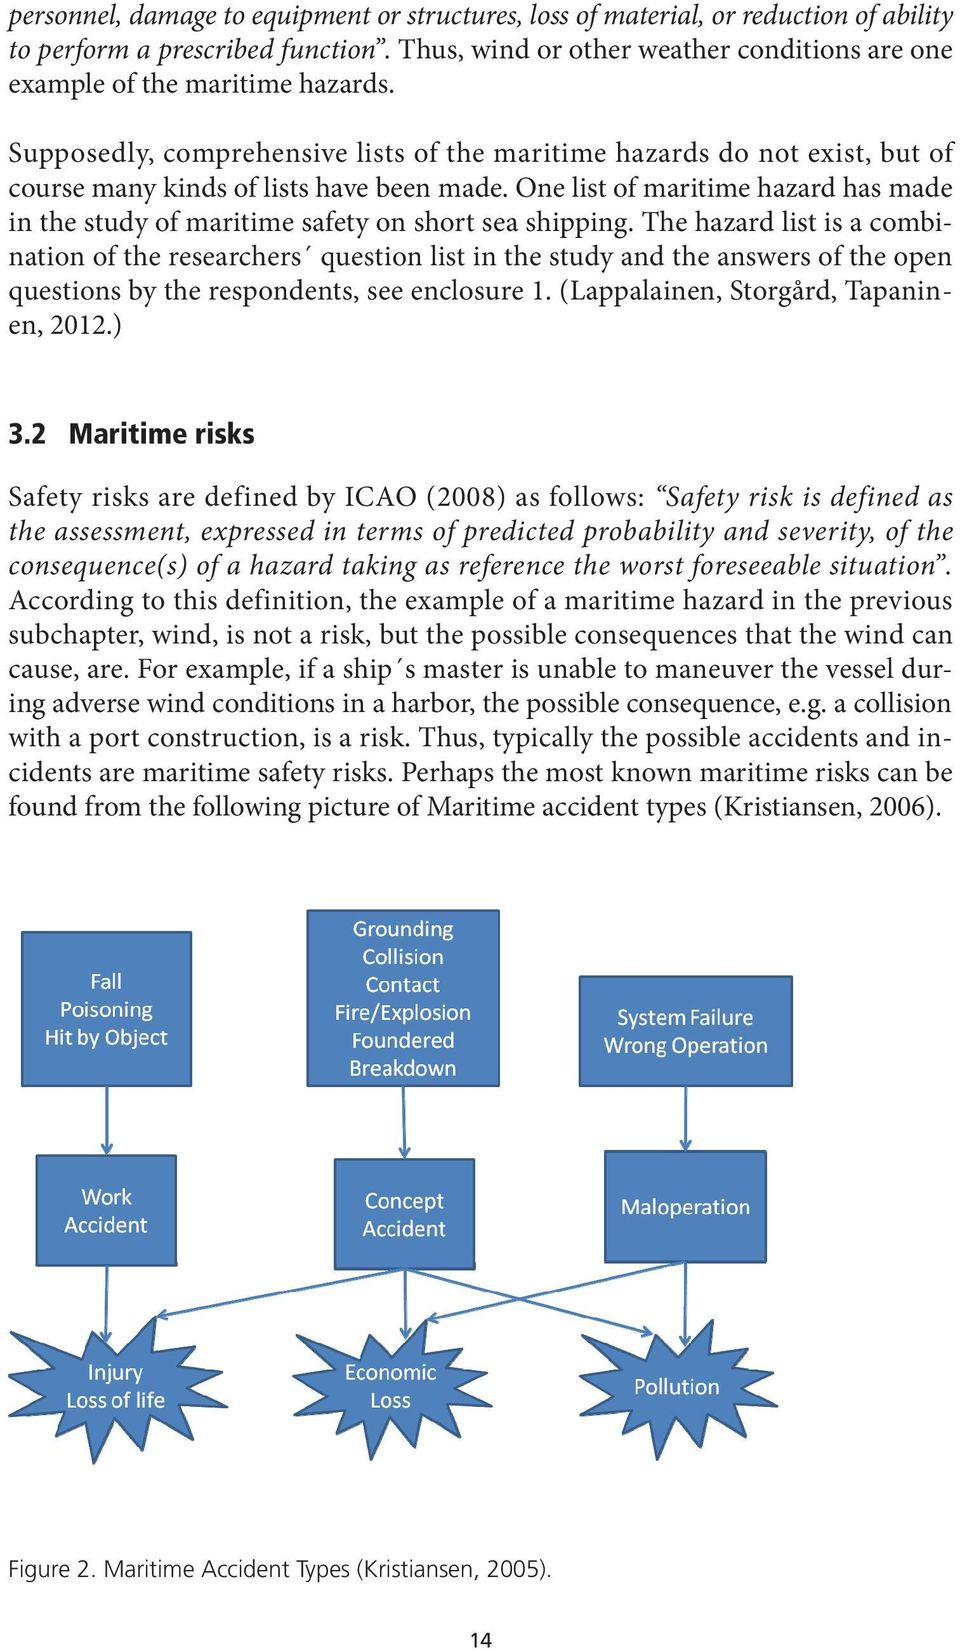 One list of maritime hazard has made in the study of maritime safety on short sea shipping.